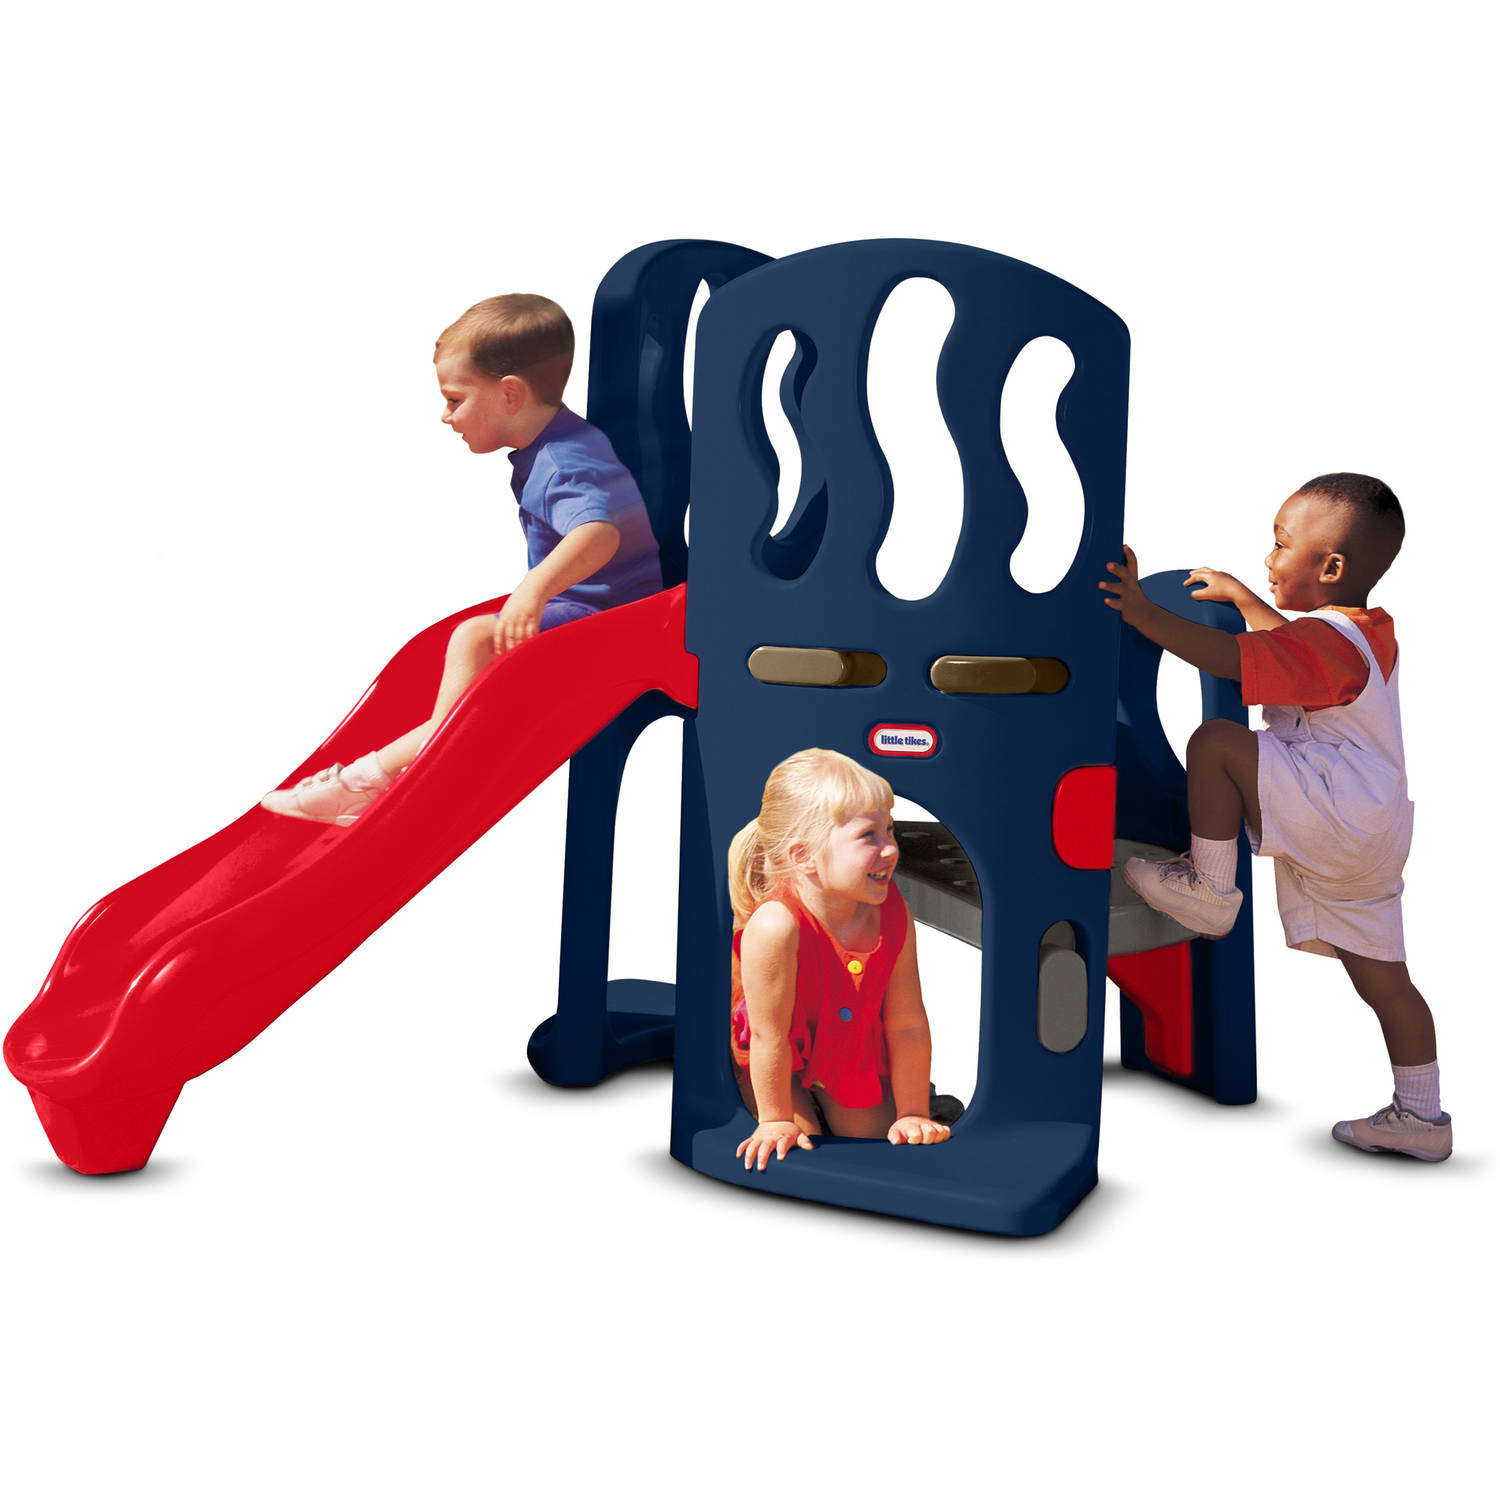 Little Tikes Hide & Slide Climber by MGA Entertainment